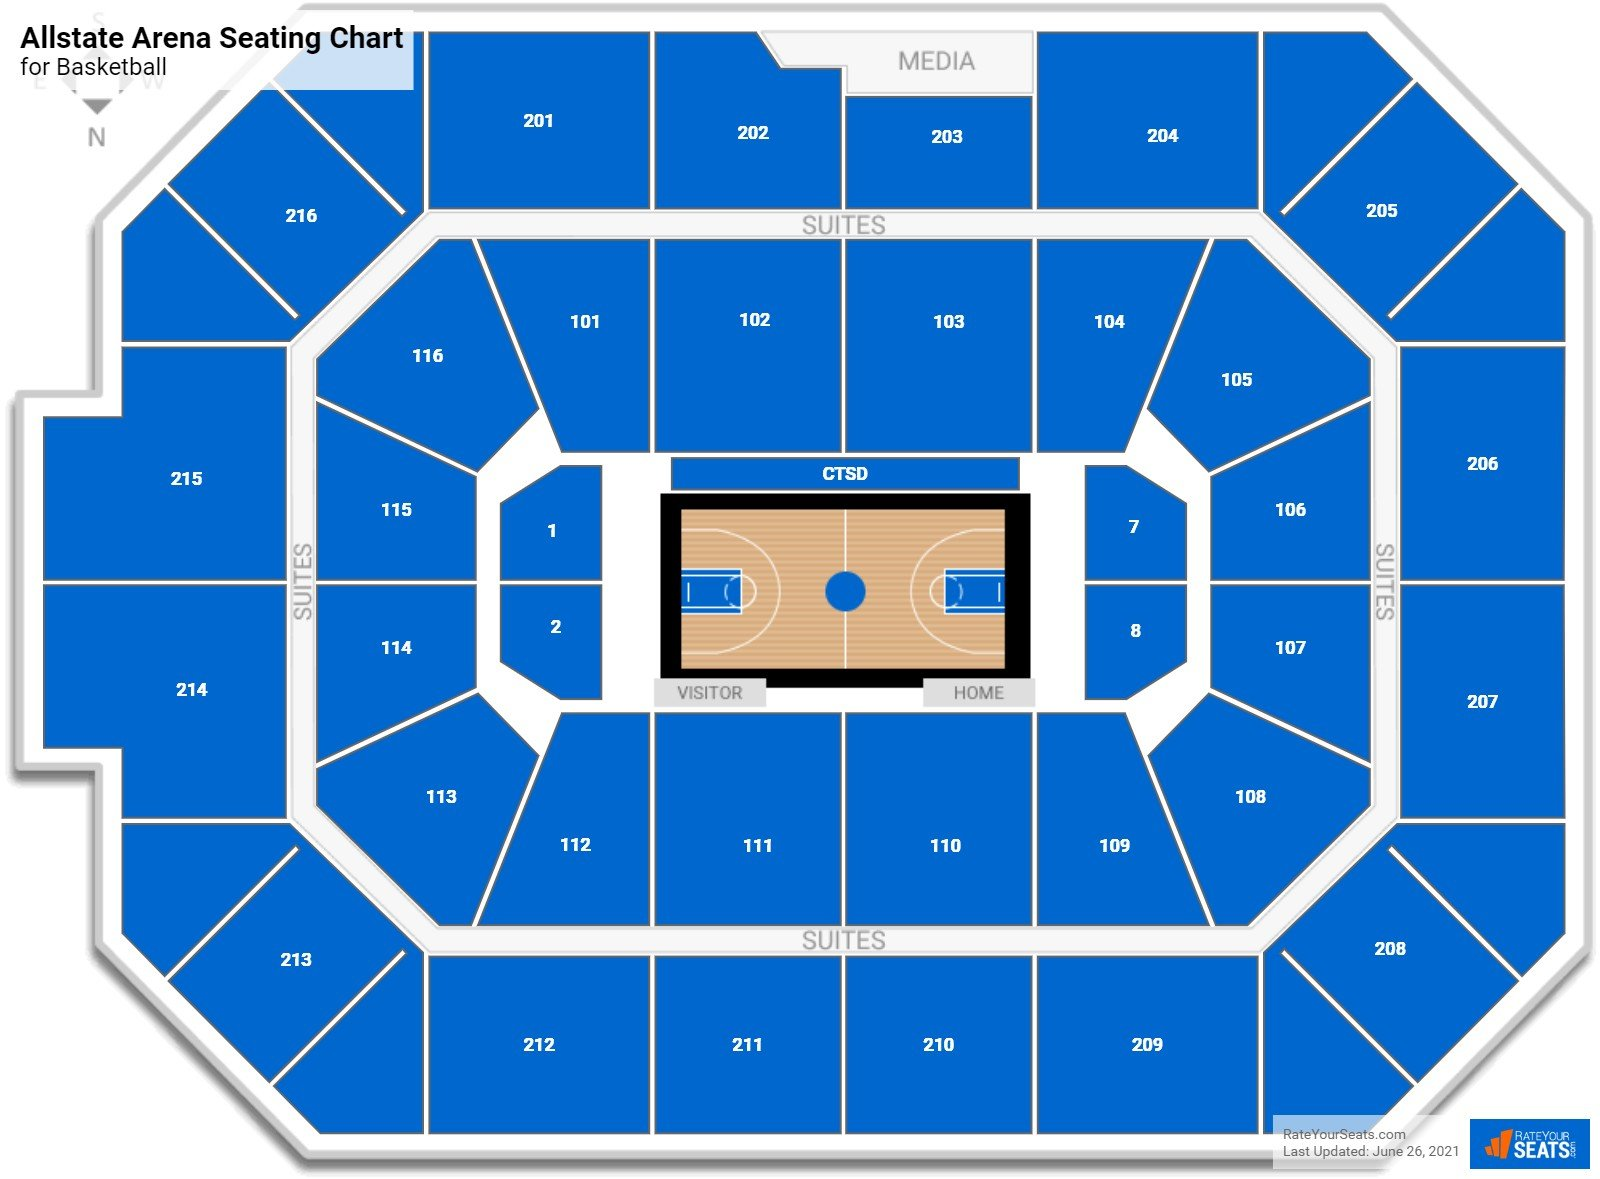 Allstate Arena Seating Chart for Basketball